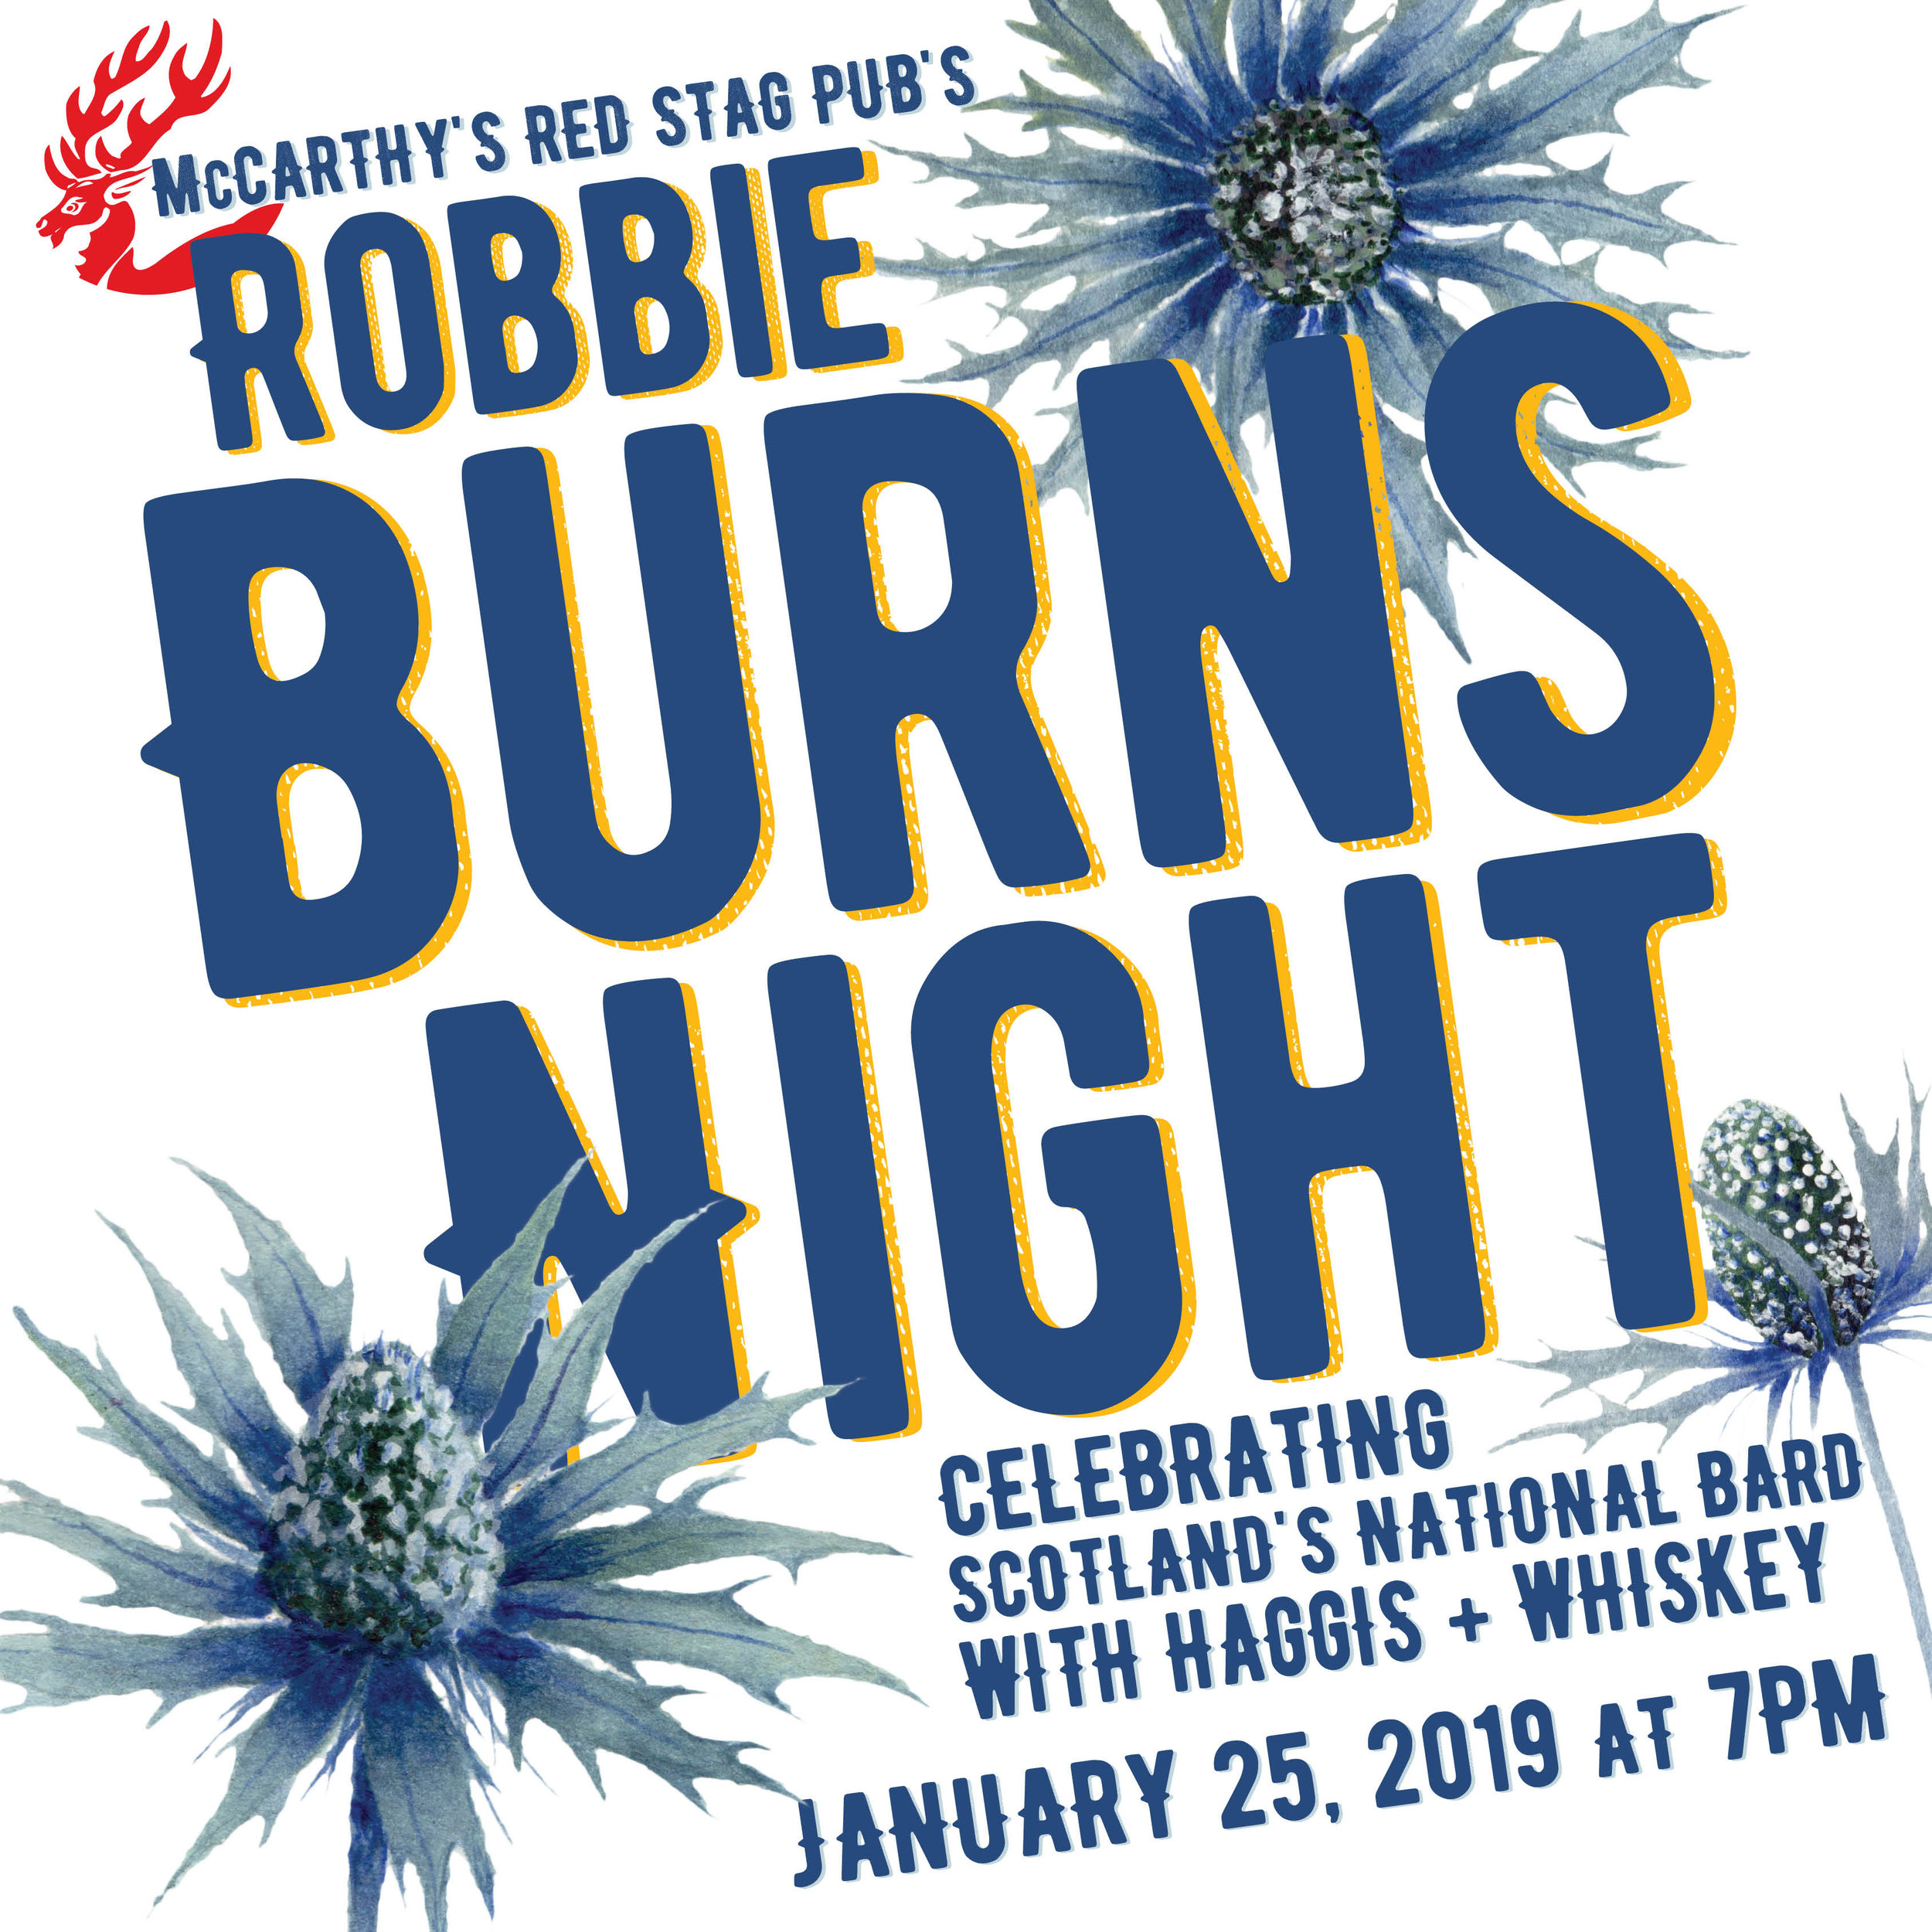 ROBBIE BURNS • PROMOTIONAL IMAGE FOR SOCIAL MEDIA FOR 2019  CLIENT: McCARTHY'S RED STAG PUB AND WHISKEY BAR WORK: Adobe Illustrator + InDesign